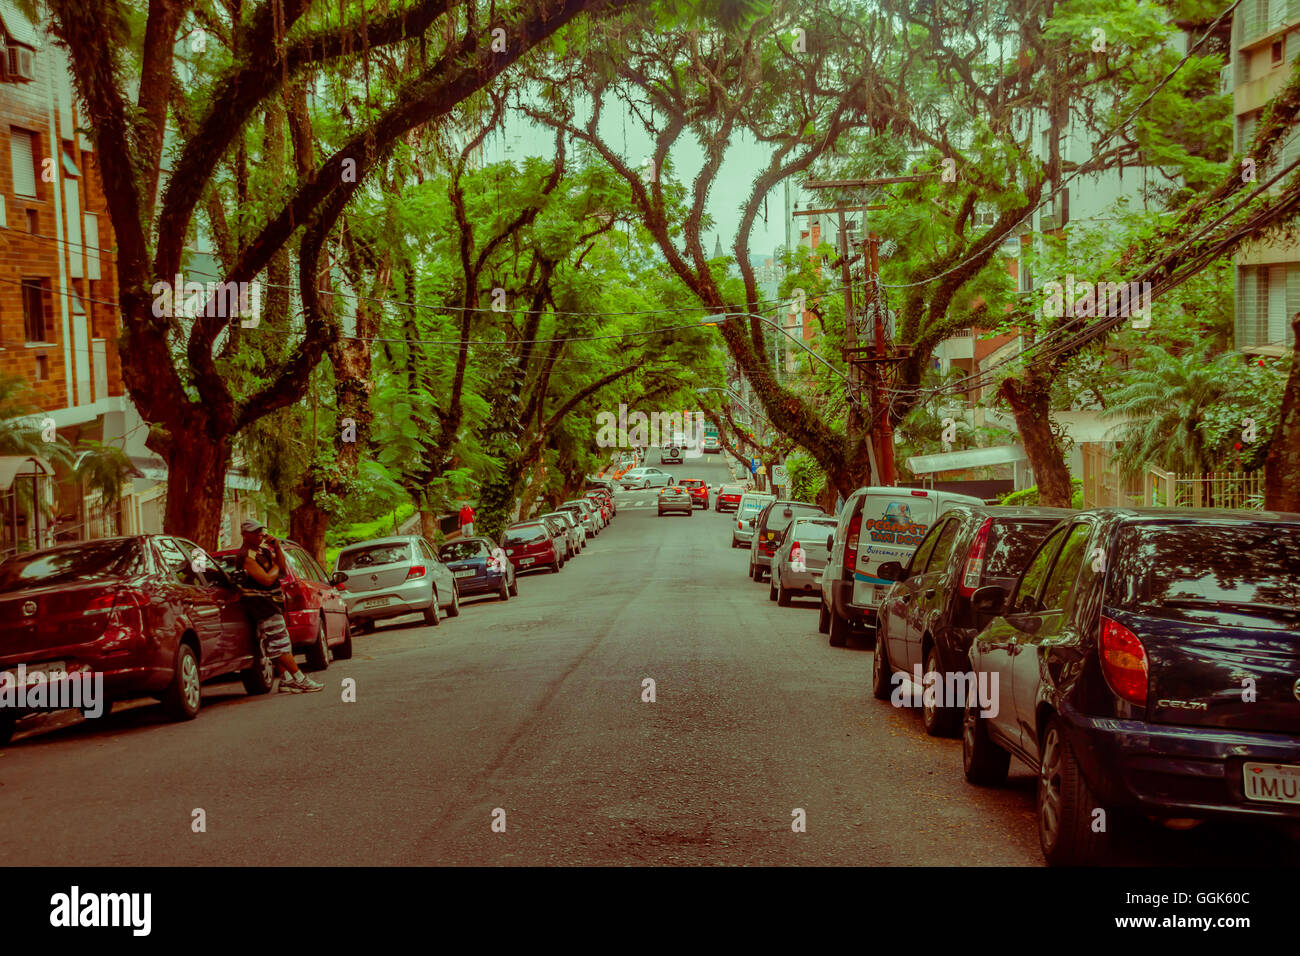 PORTO ALEGRE, BRAZIL - MAY 06, 2016: nice street with big trees in the sidewalks, lot of cars parked outside the - Stock Image